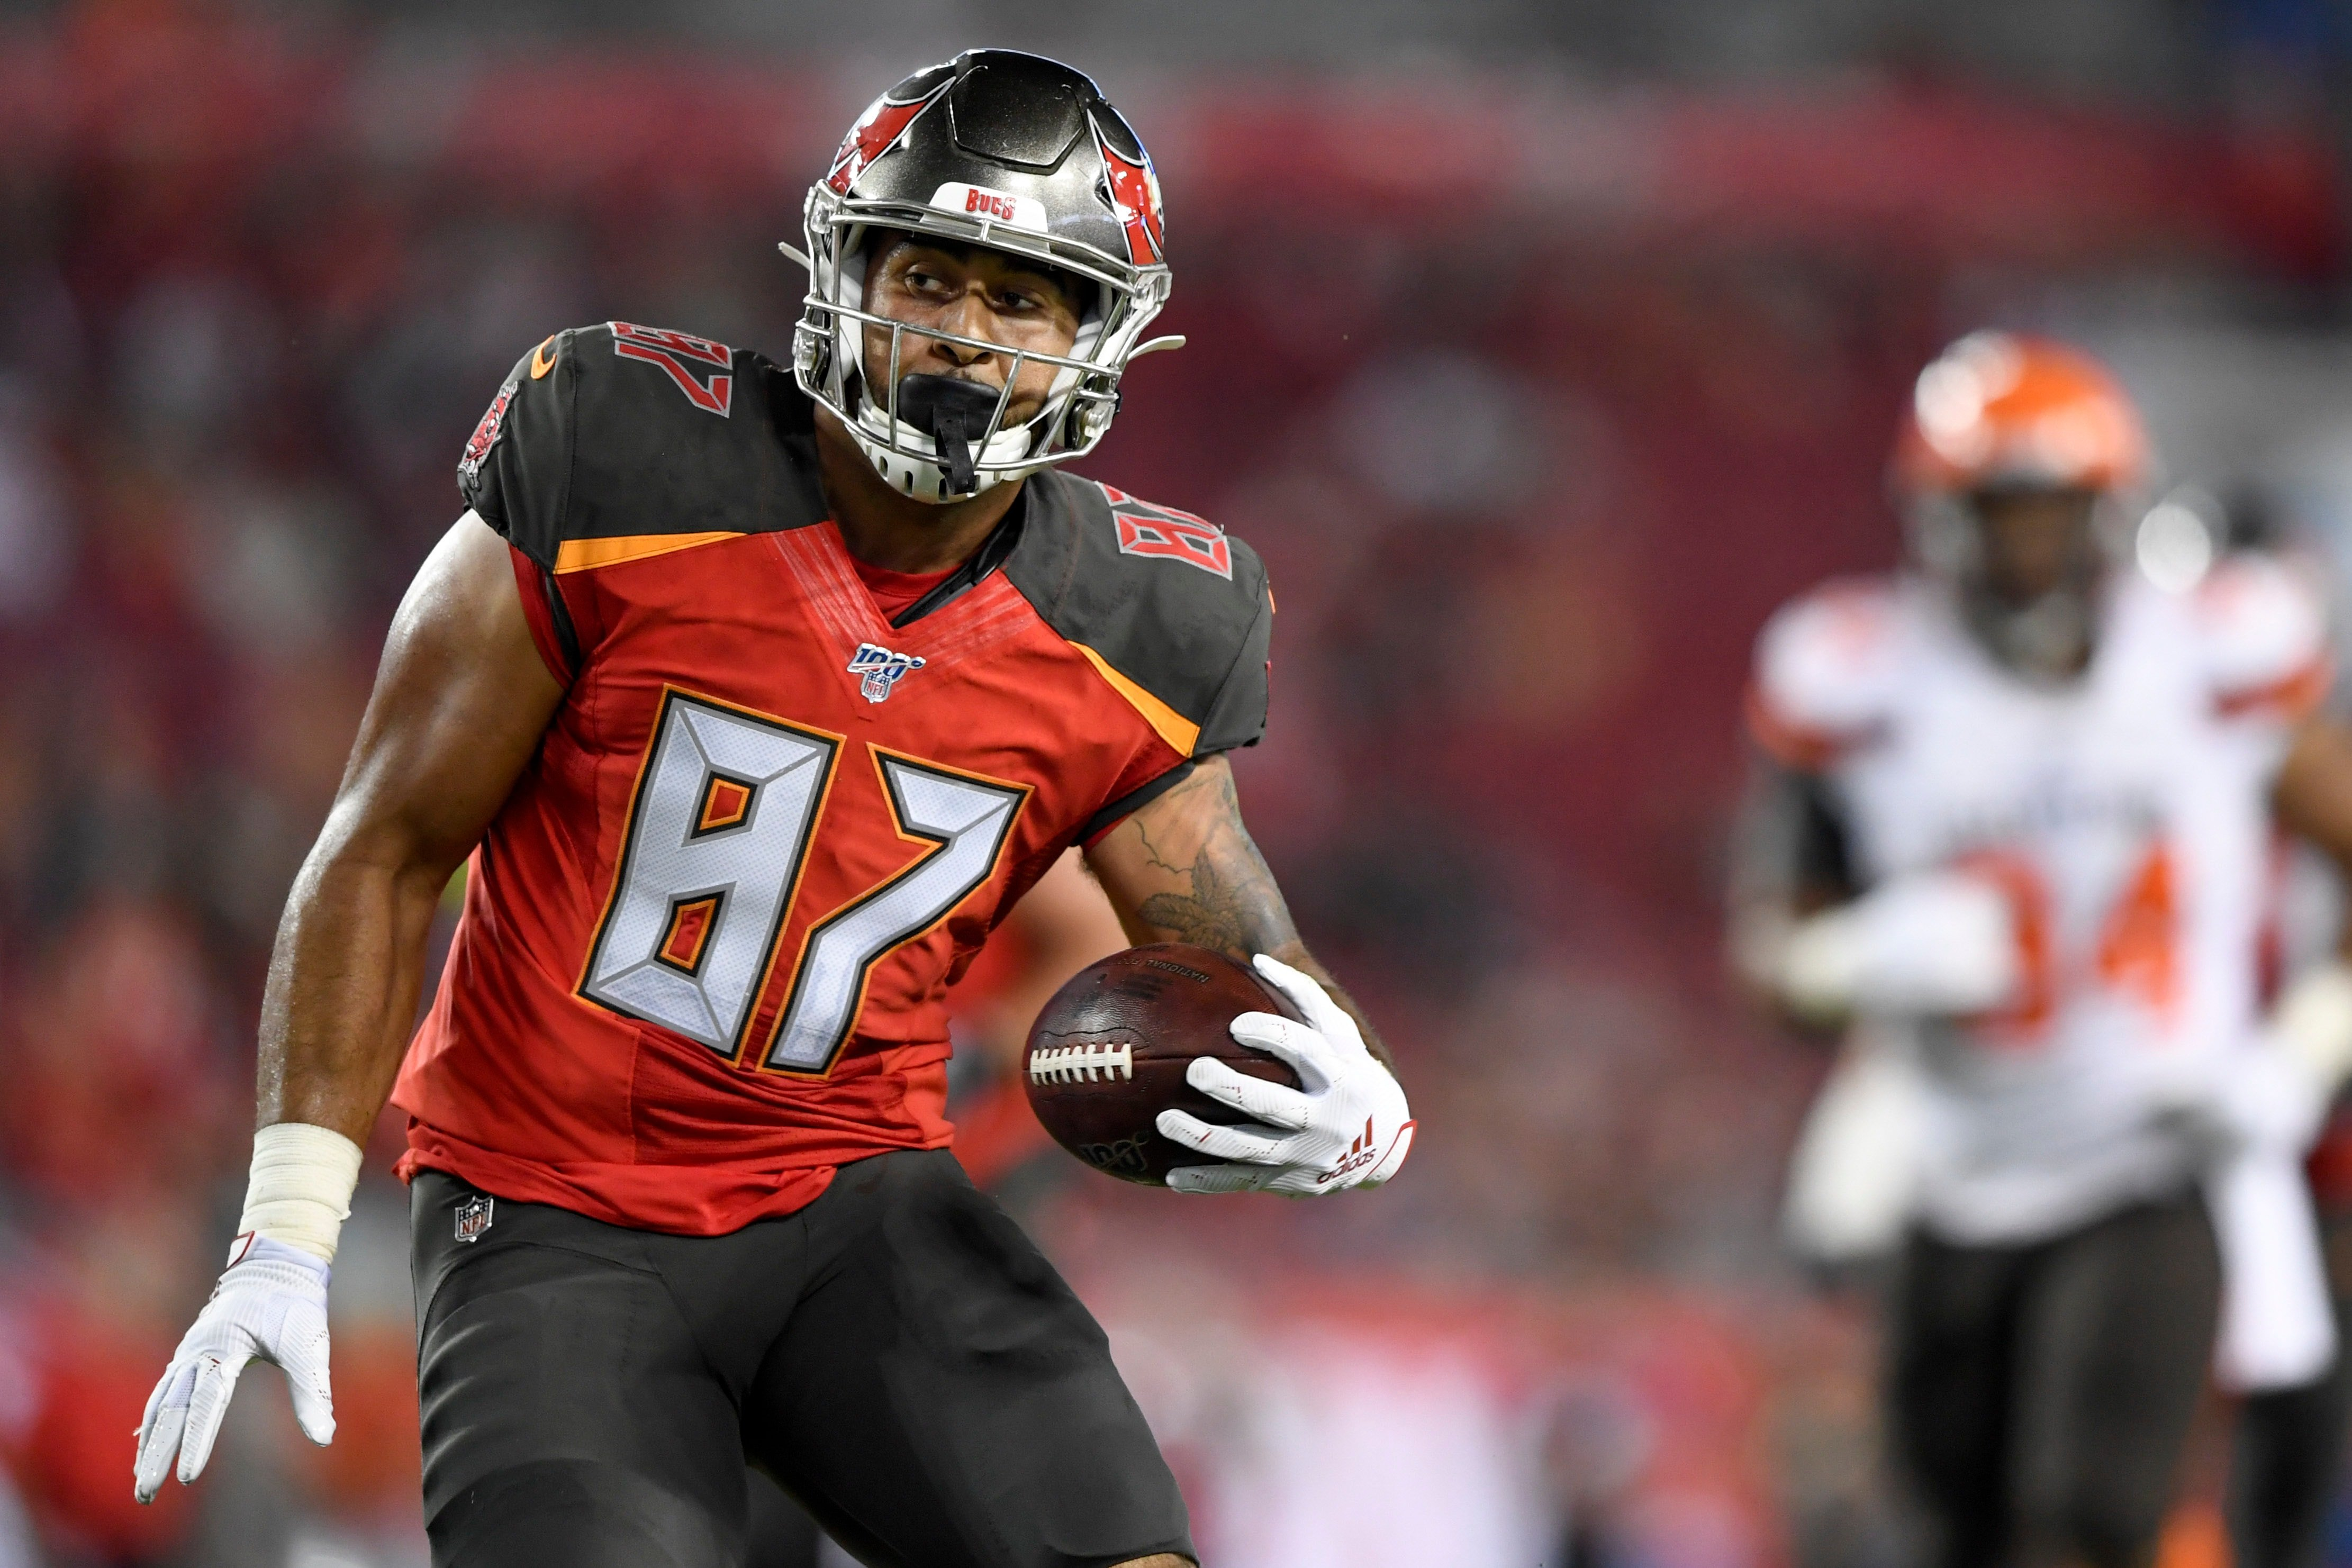 Jordan Leggett is expected to sign with the Patriots, provided he passes a physical. (Douglas DeFelice-USA TODAY Sports)